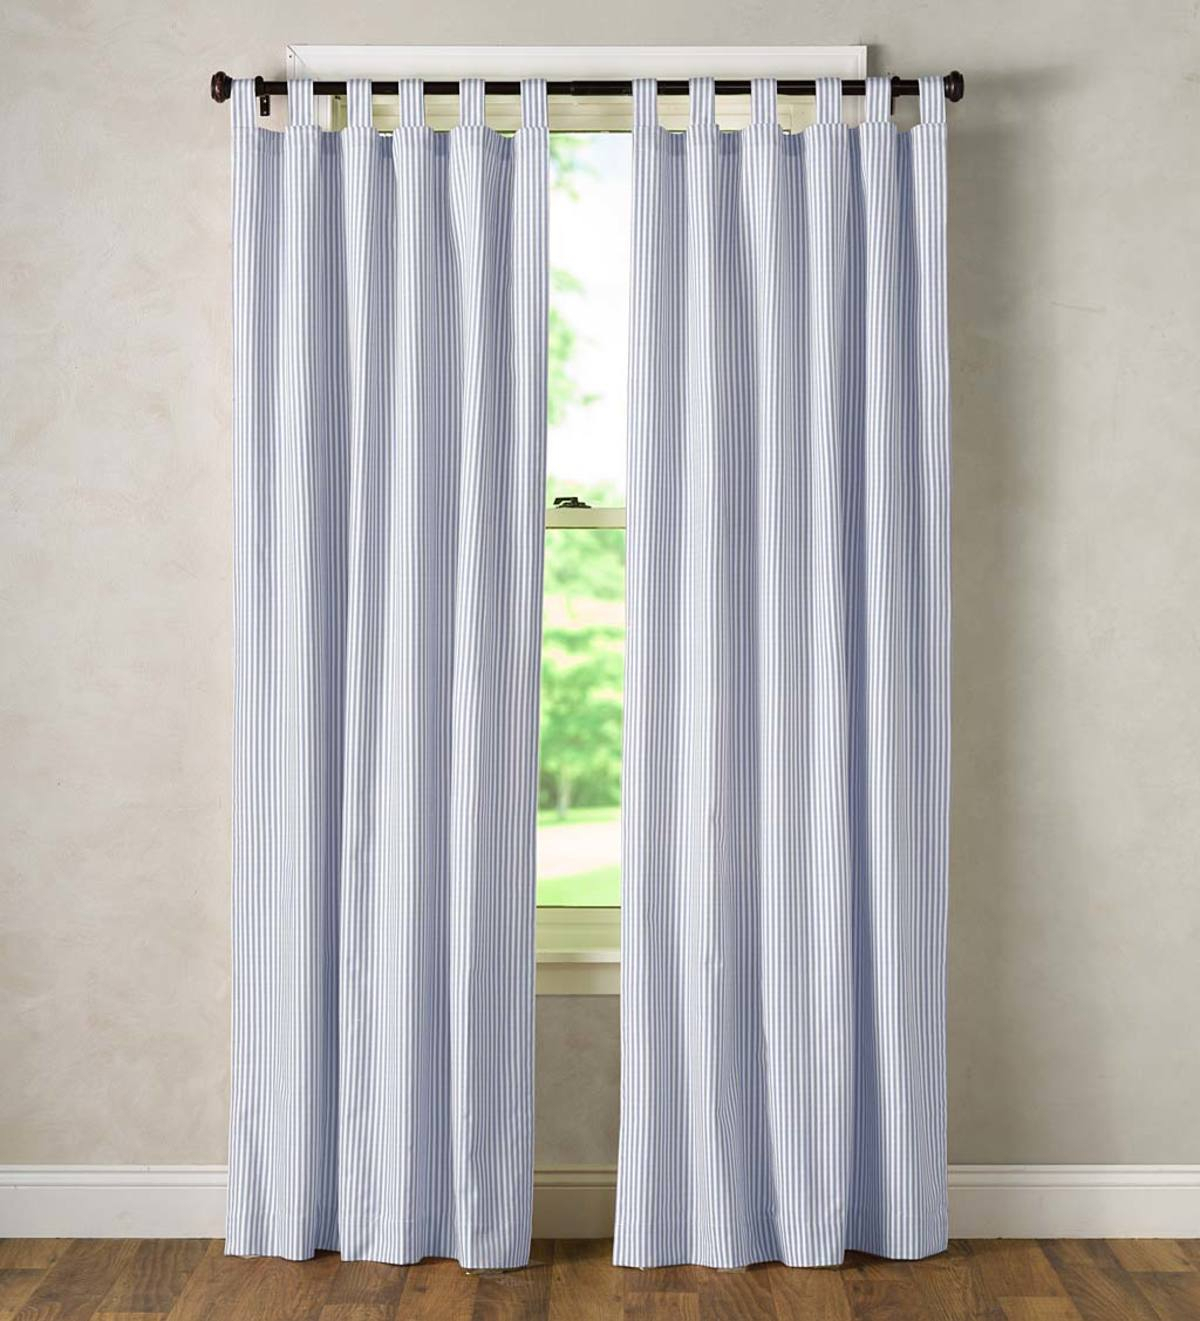 Thermalogic Insulated Ticking Stripe Tab Top Curtain Pairs Throughout Insulated Cotton Curtain Panel Pairs (View 10 of 20)